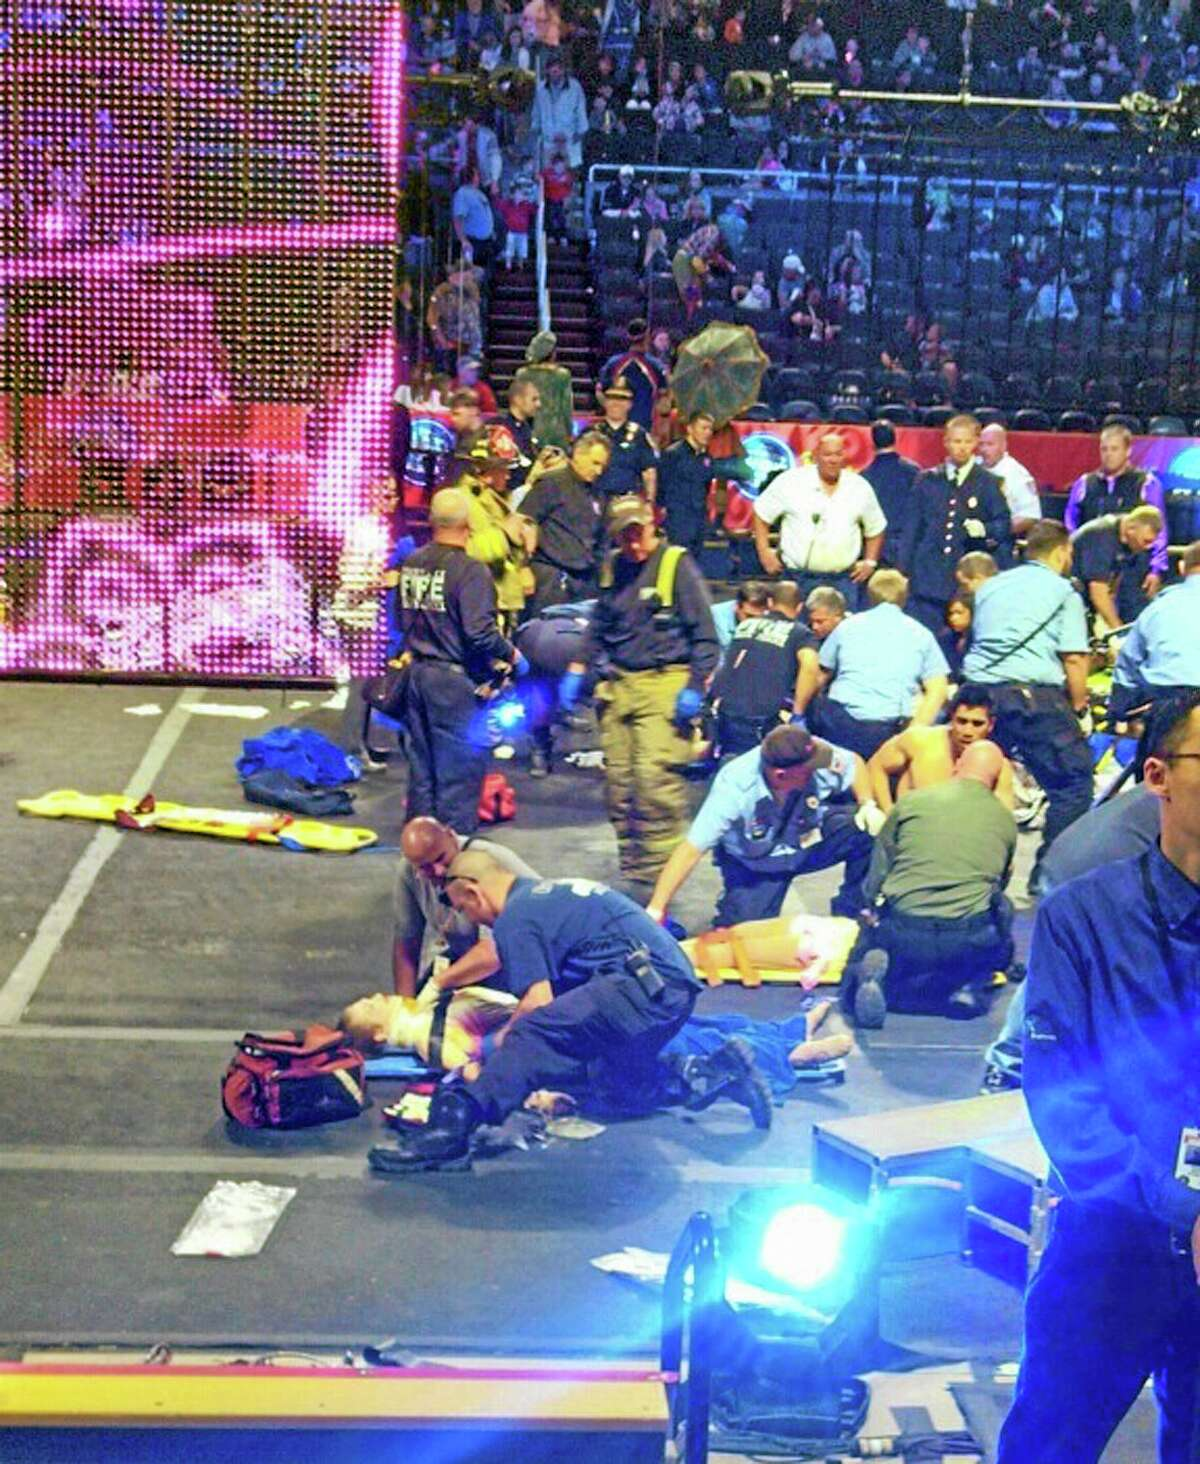 In this photo provided by Rosa Viveiros, first responders work at the center ring after a platform collapsed during an aerial hair-hanging stunt at the Ringling Brothers and Barnum and Bailey Circus, Sunday, May 4, 2014, in Providence, R.I. At least nine performers were seriously injured in the fall, including a dancer below, while an unknown number of others suffered minor injuries. (AP Photo/Rosa Viveiros) MANDATORY CREDIT